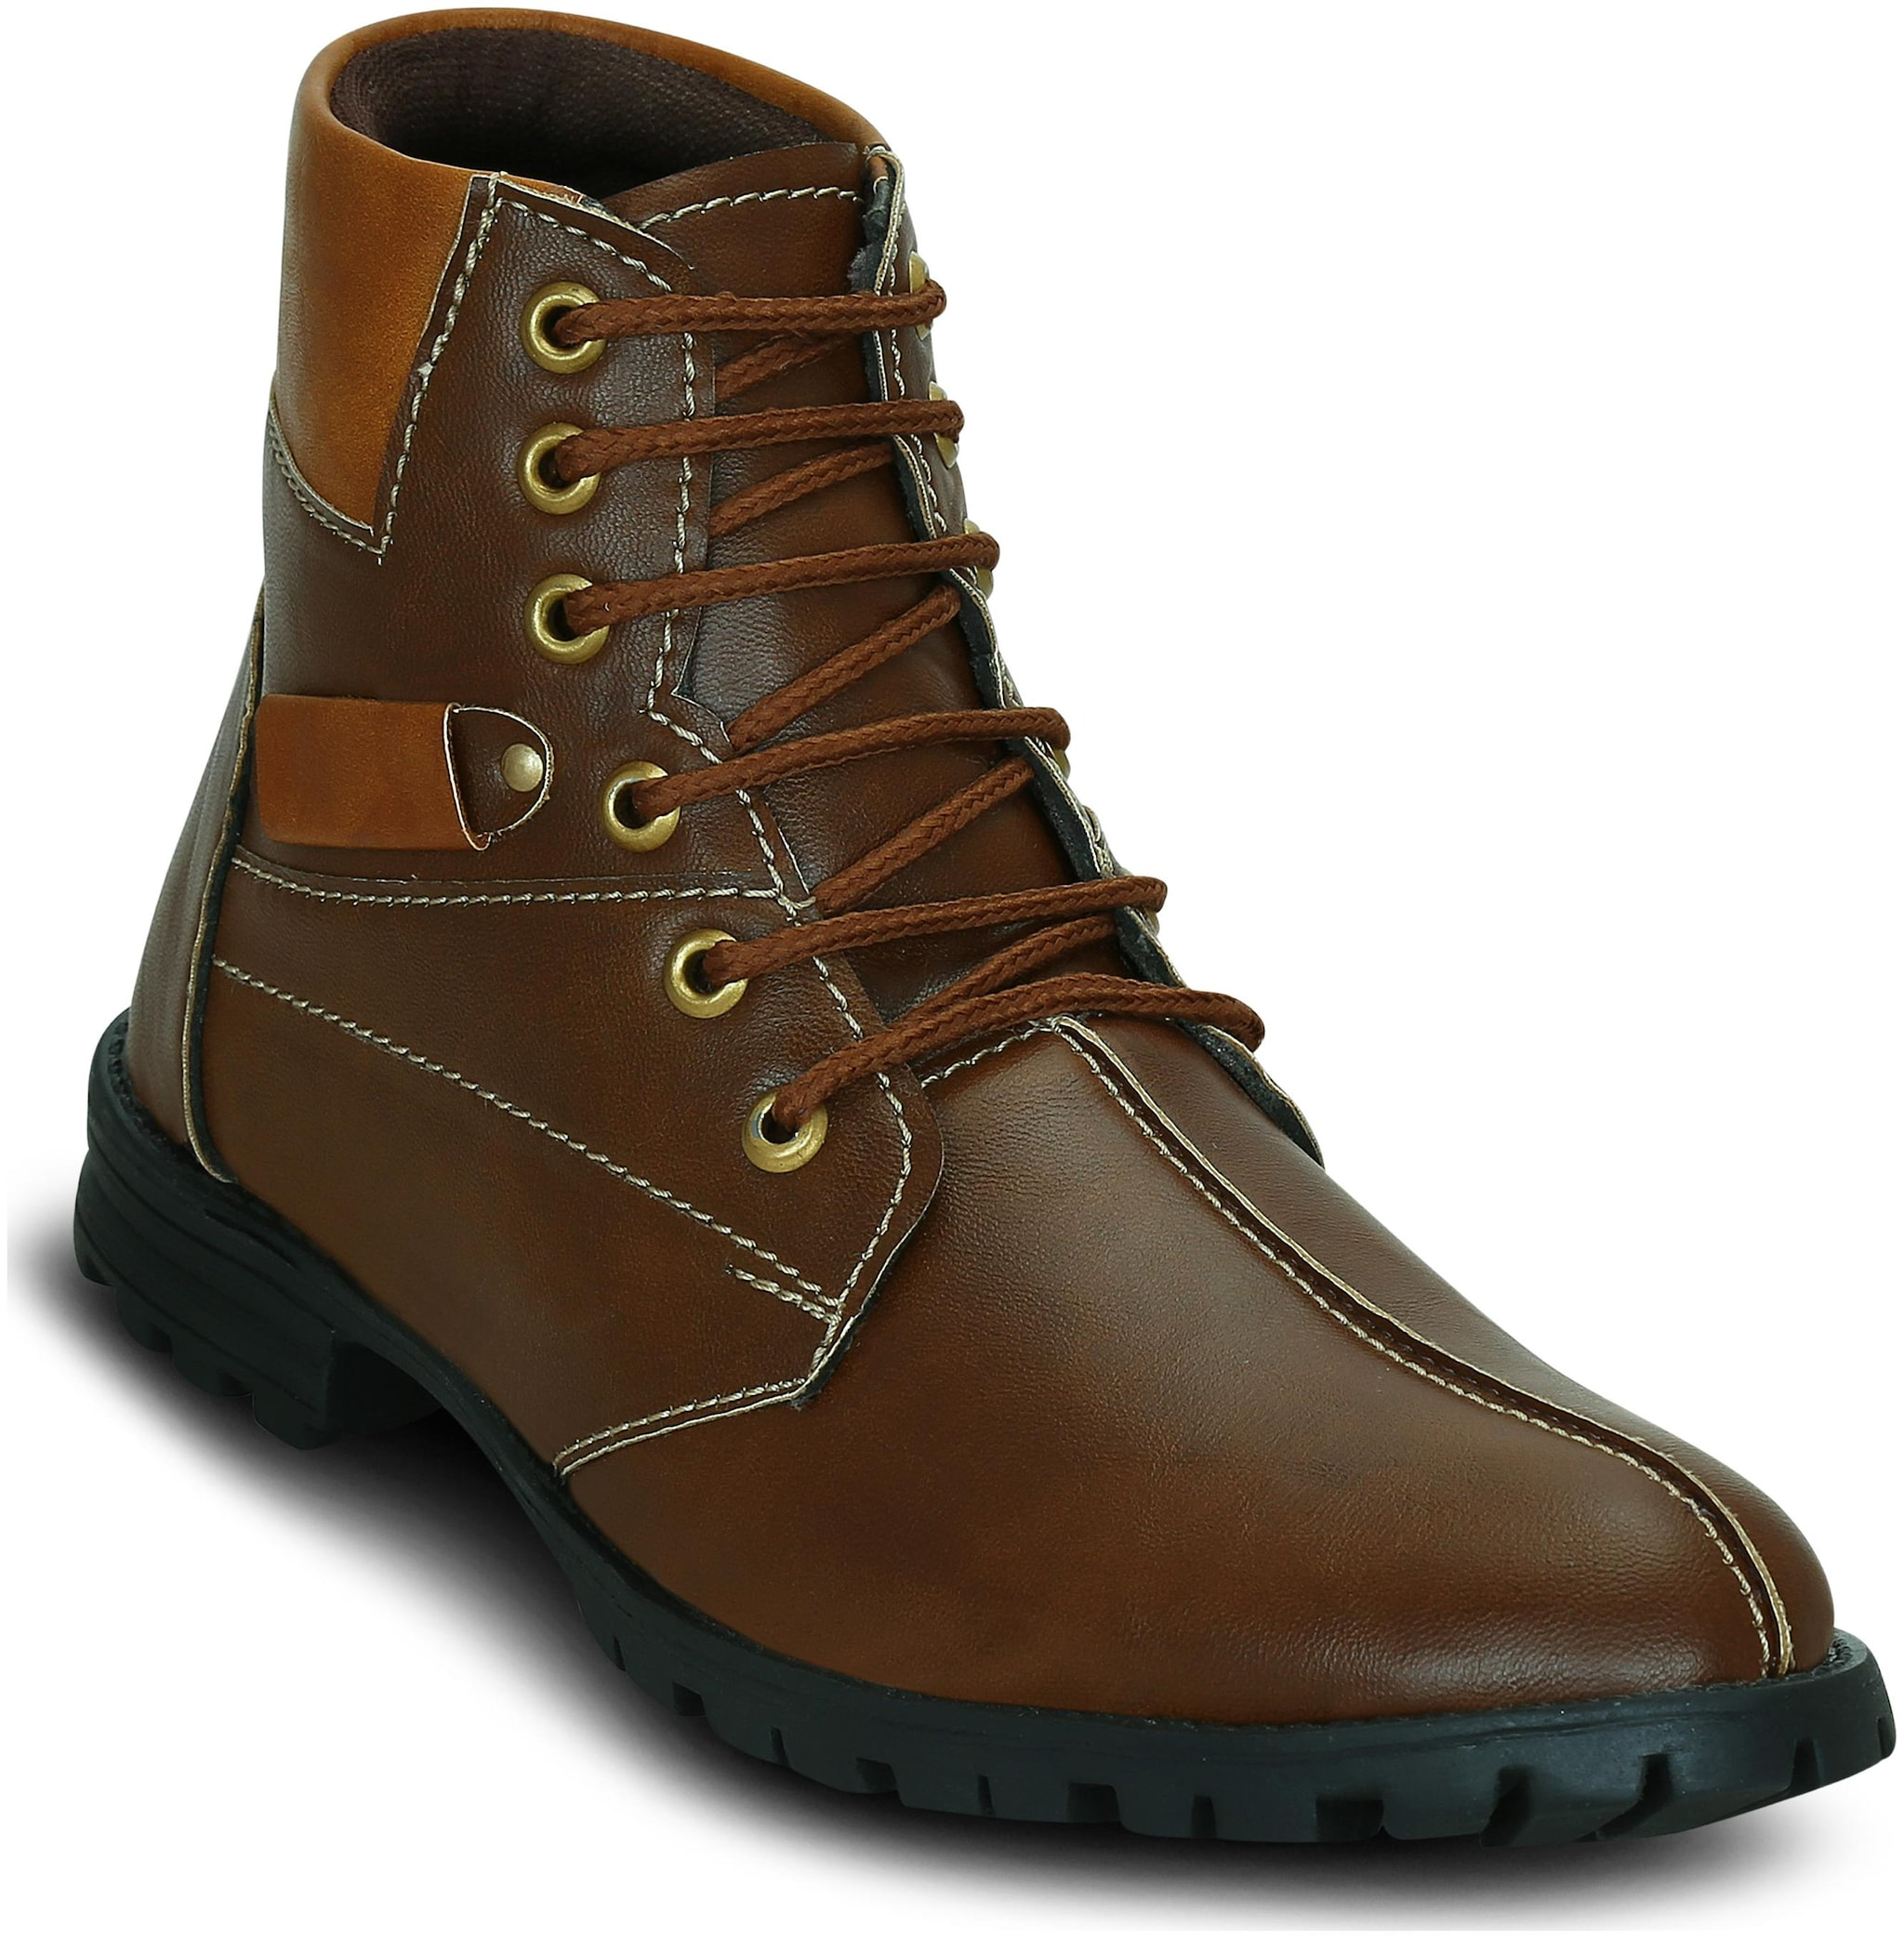 https://assetscdn1.paytm.com/images/catalog/product/F/FO/FOOMANZO-BOOTS-GET-2010637D98415/1563337884806_0..jpg